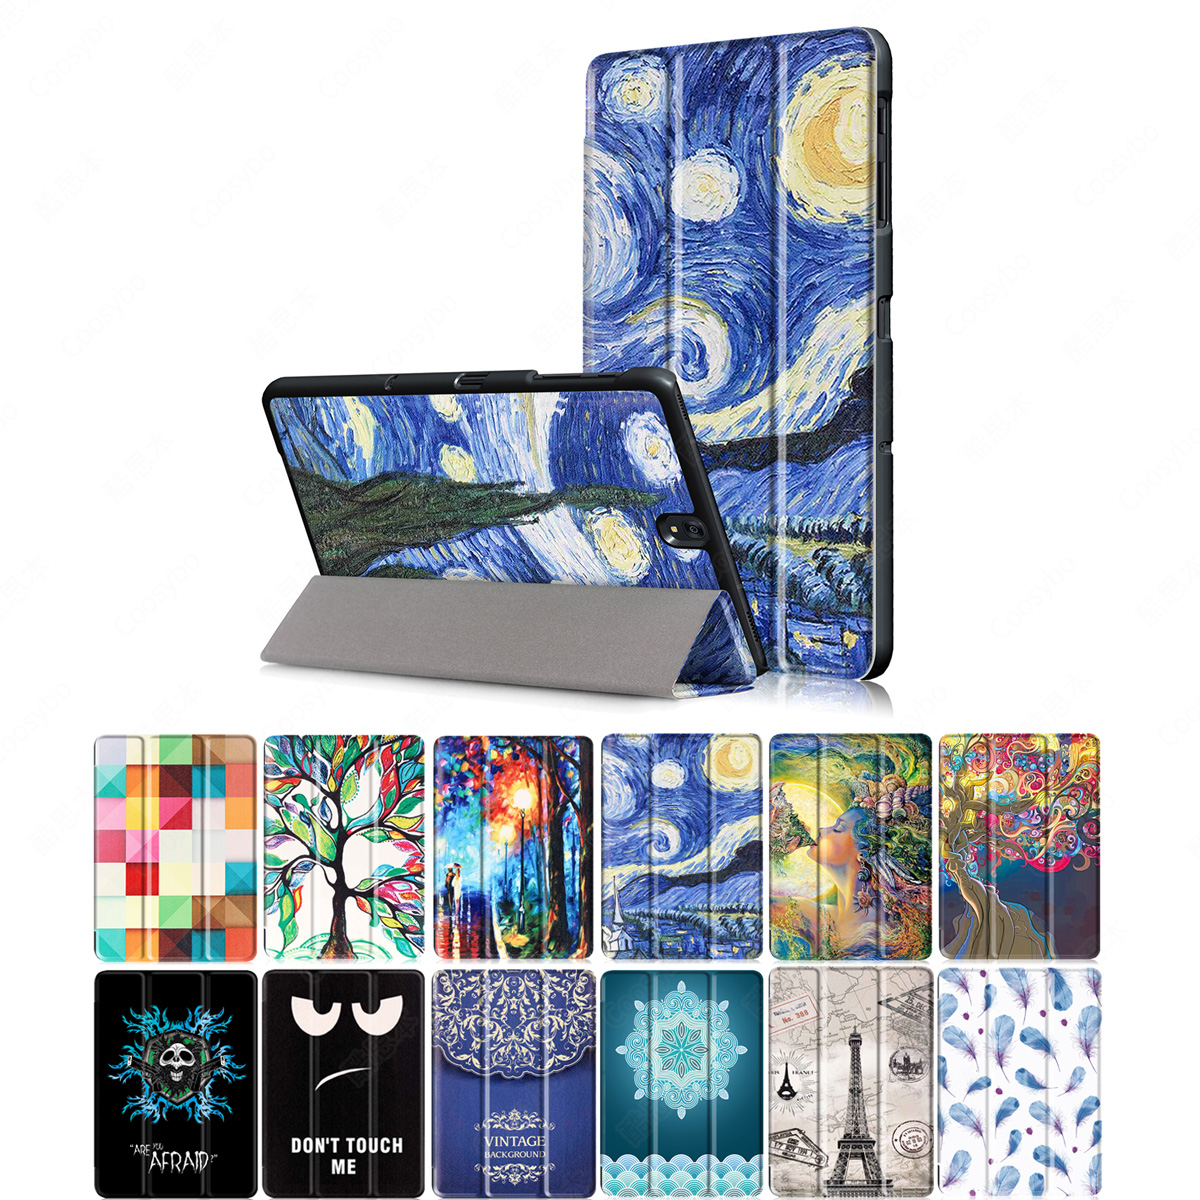 for Samsung Tab S3 9.7 Case, Ultra Slim Case + PU Leather Smart Cover Stand Auto Sleep/Wake for Galaxy Tablet S3 SM-T820 T825 luxury folding flip smart pu leather case book cover for samsung galaxy tab s 8 4 t700 t705 sleep wake function screen film pen